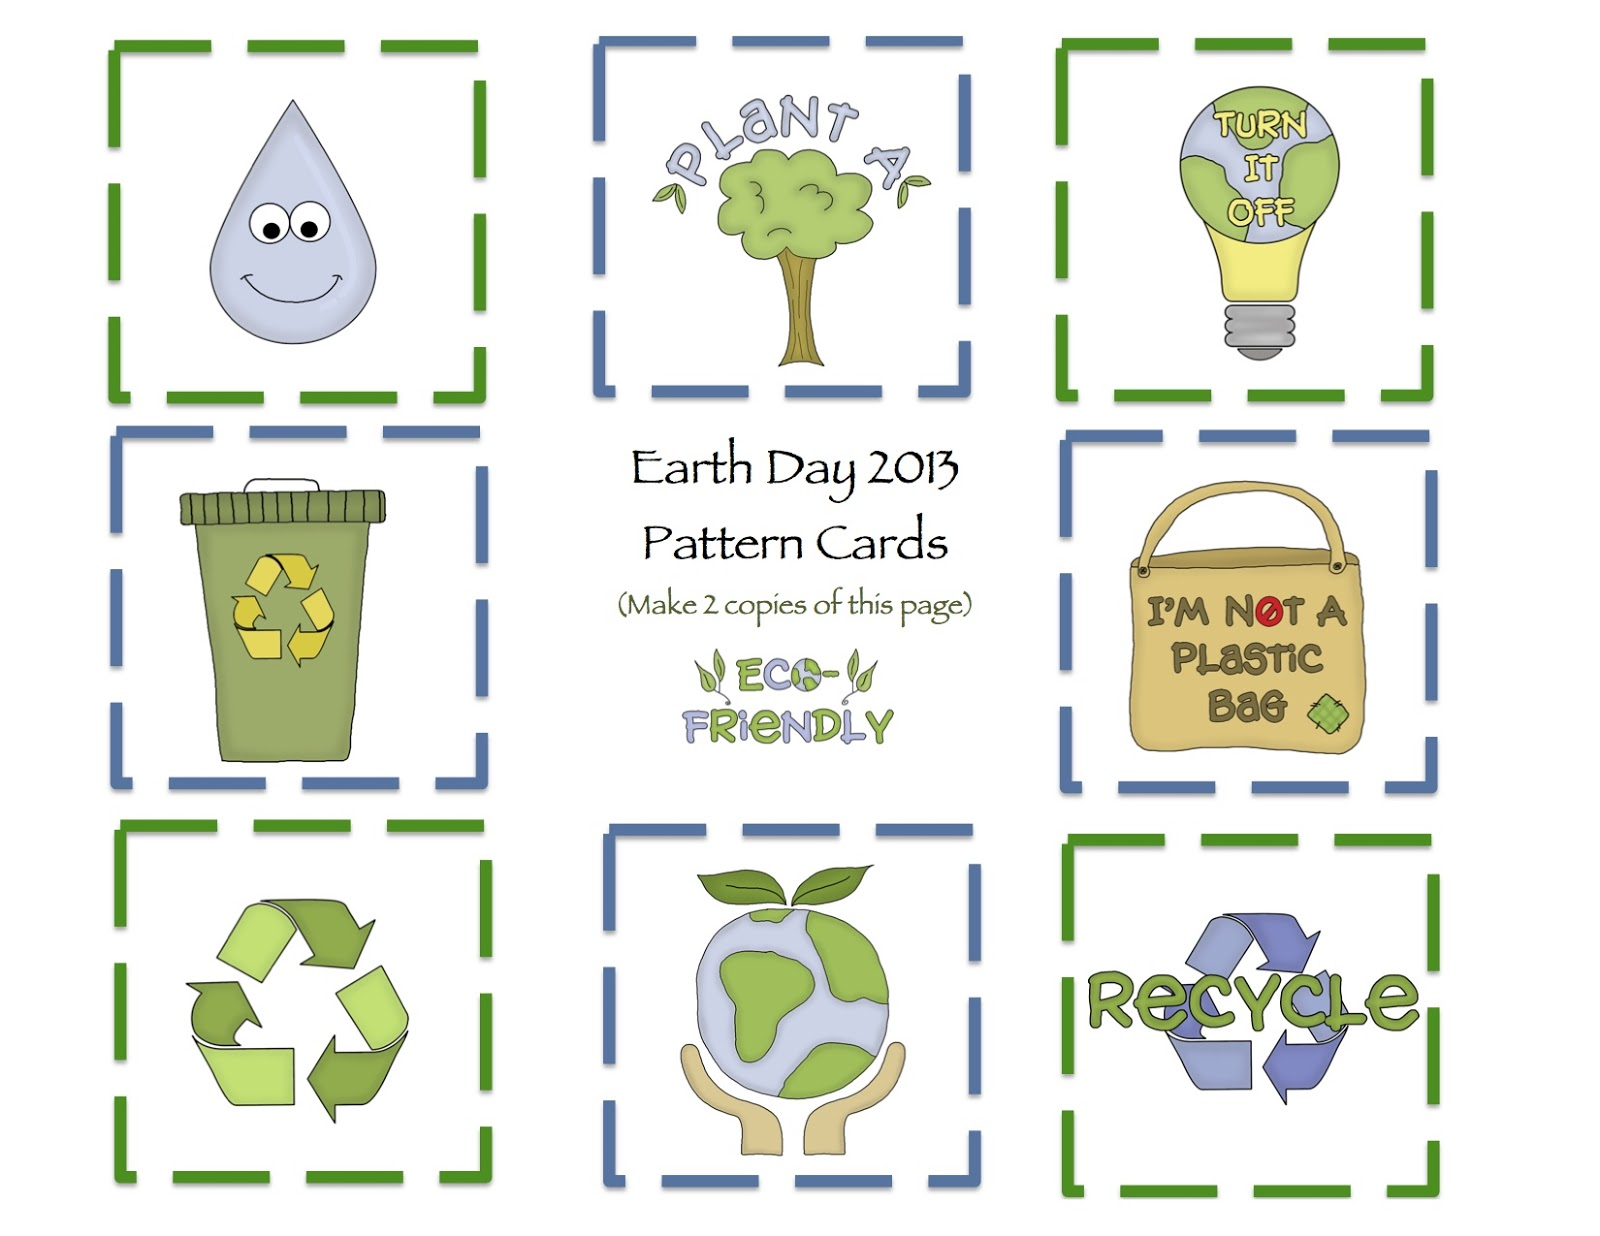 Earth day printable 2013 preschool printables pattern cards robcynllc Images